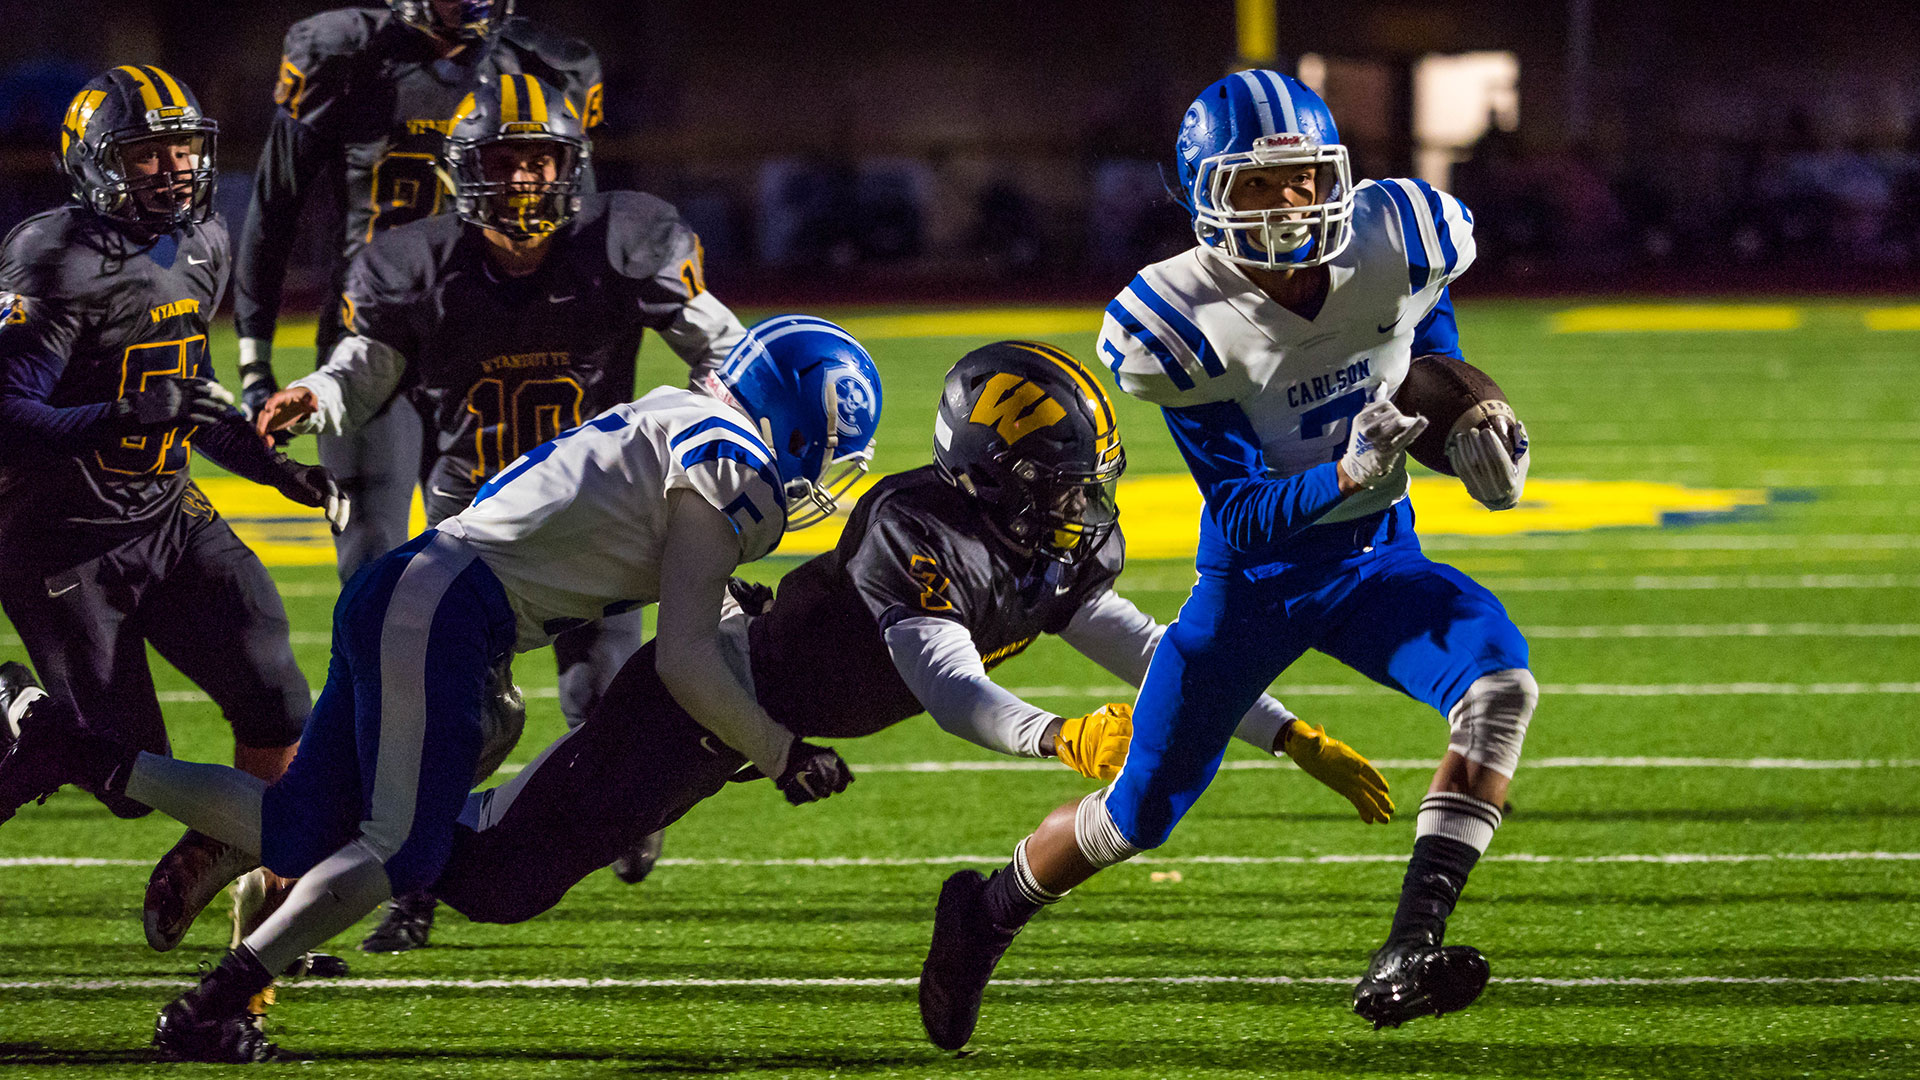 QnA VBage Photographing high school football with the Olympus OM-D E-M1 Mark II, part two